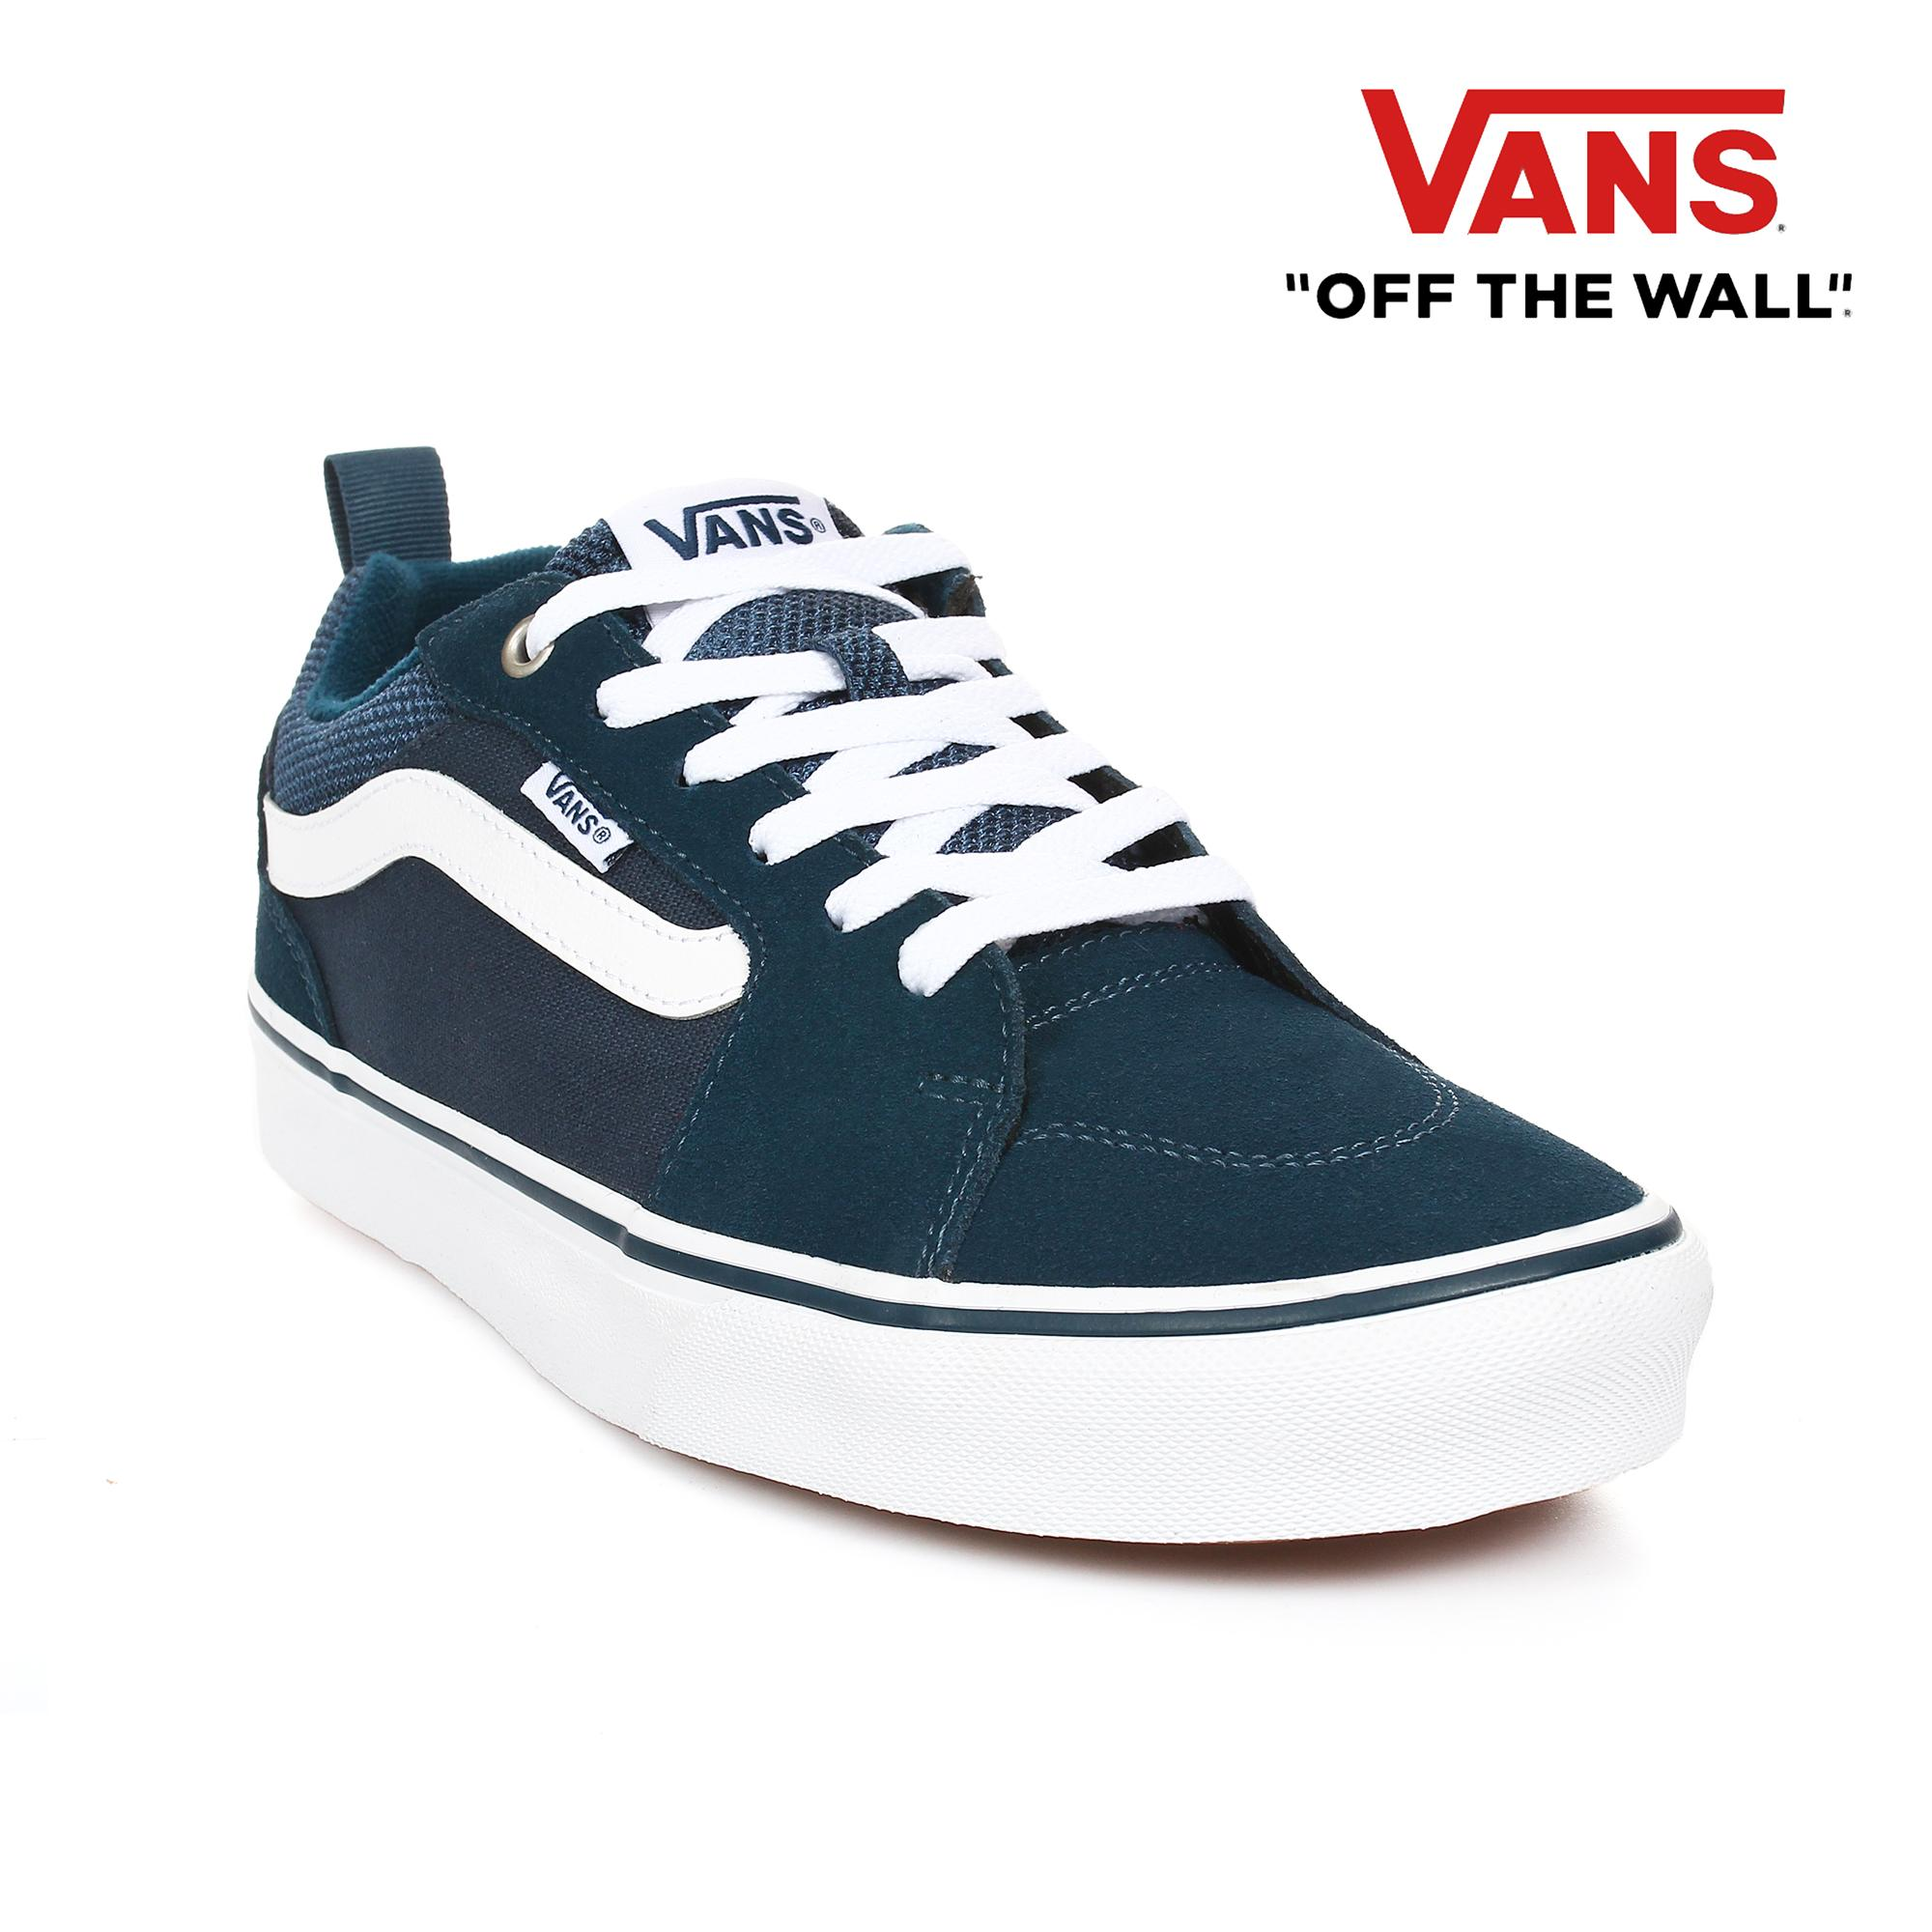 Vans Shoes for Men Philippines - Vans Men s Shoes for sale - prices ... cce4db3bb